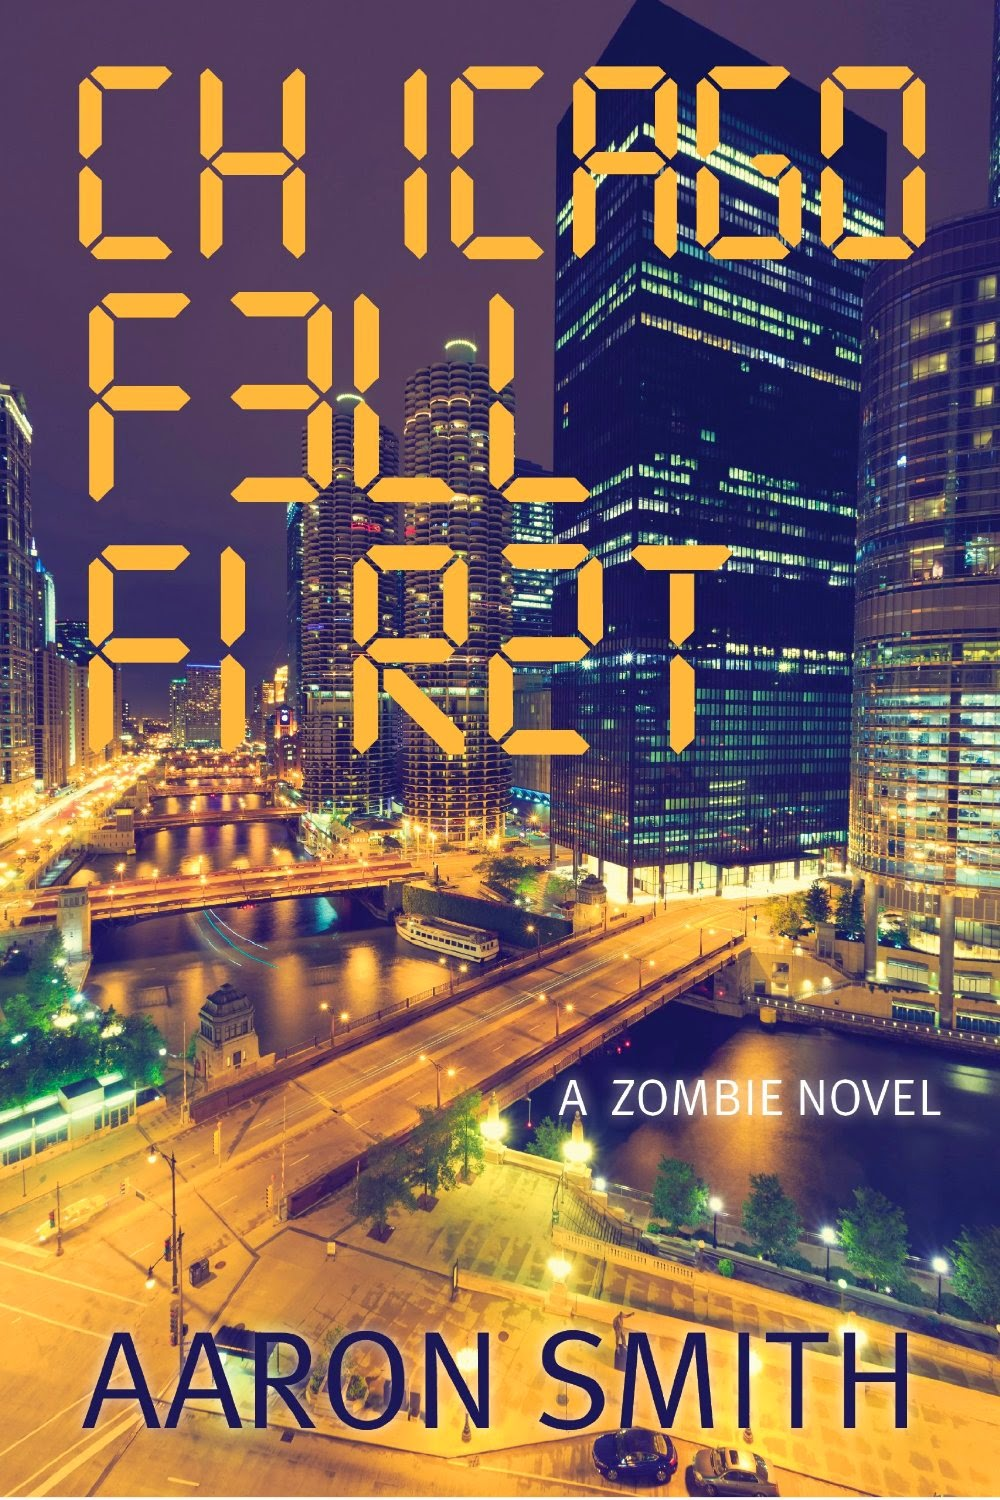 http://www.amazon.com/Chicago-Fell-First-Zombie-Novel-ebook/dp/B00GABRTRA/ref=sr_1_1?s=books&ie=UTF8&qid=1412945391&sr=1-1&keywords=chicago+fell+first+aaron+smith